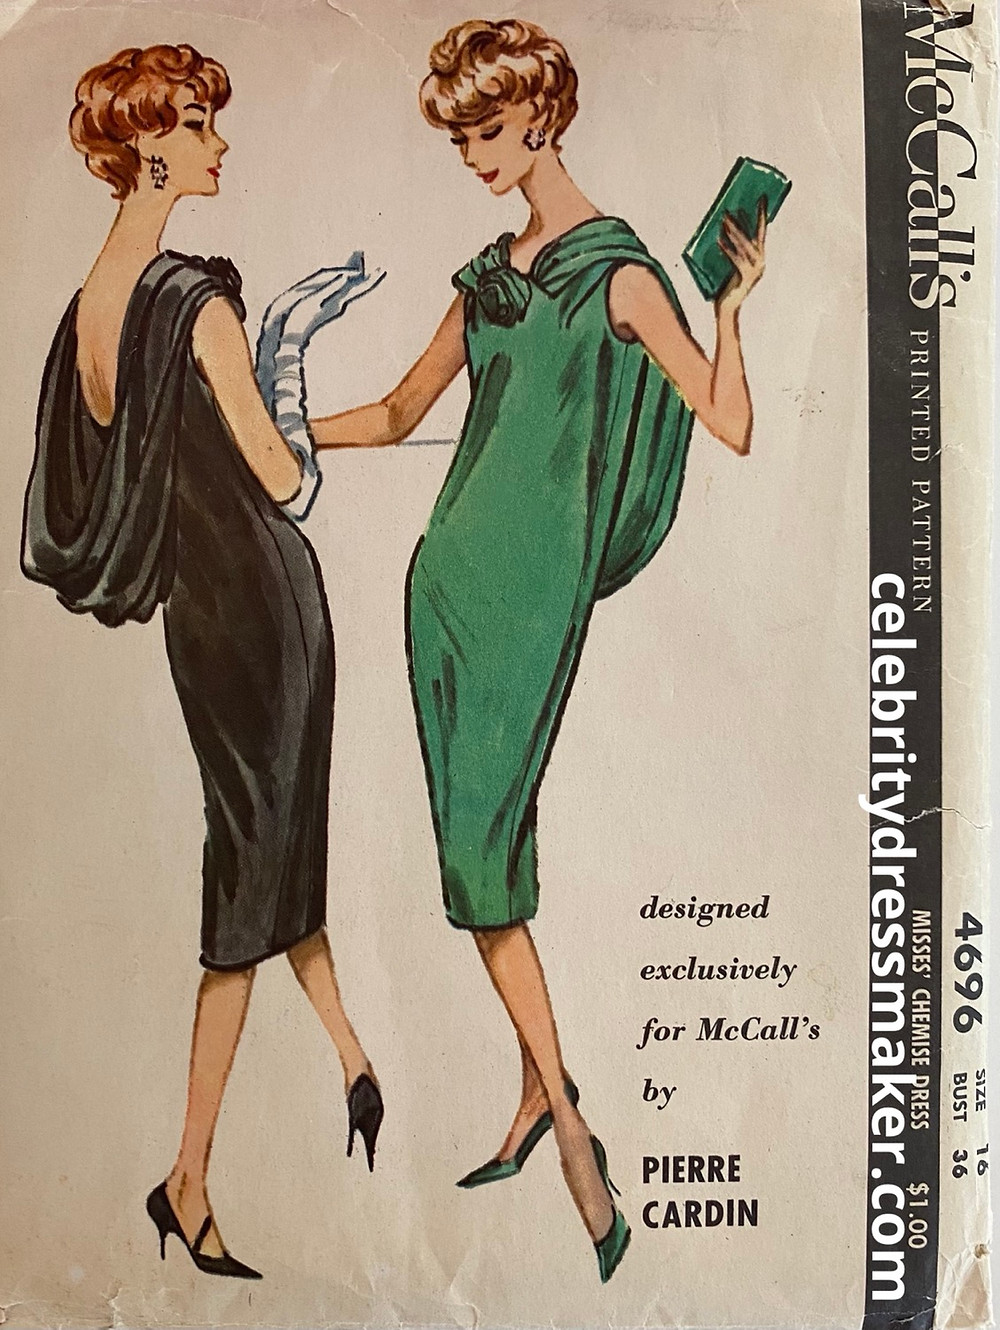 McCall's #4696 Sewing Pattern, 1958 Design by Pierre Cardin